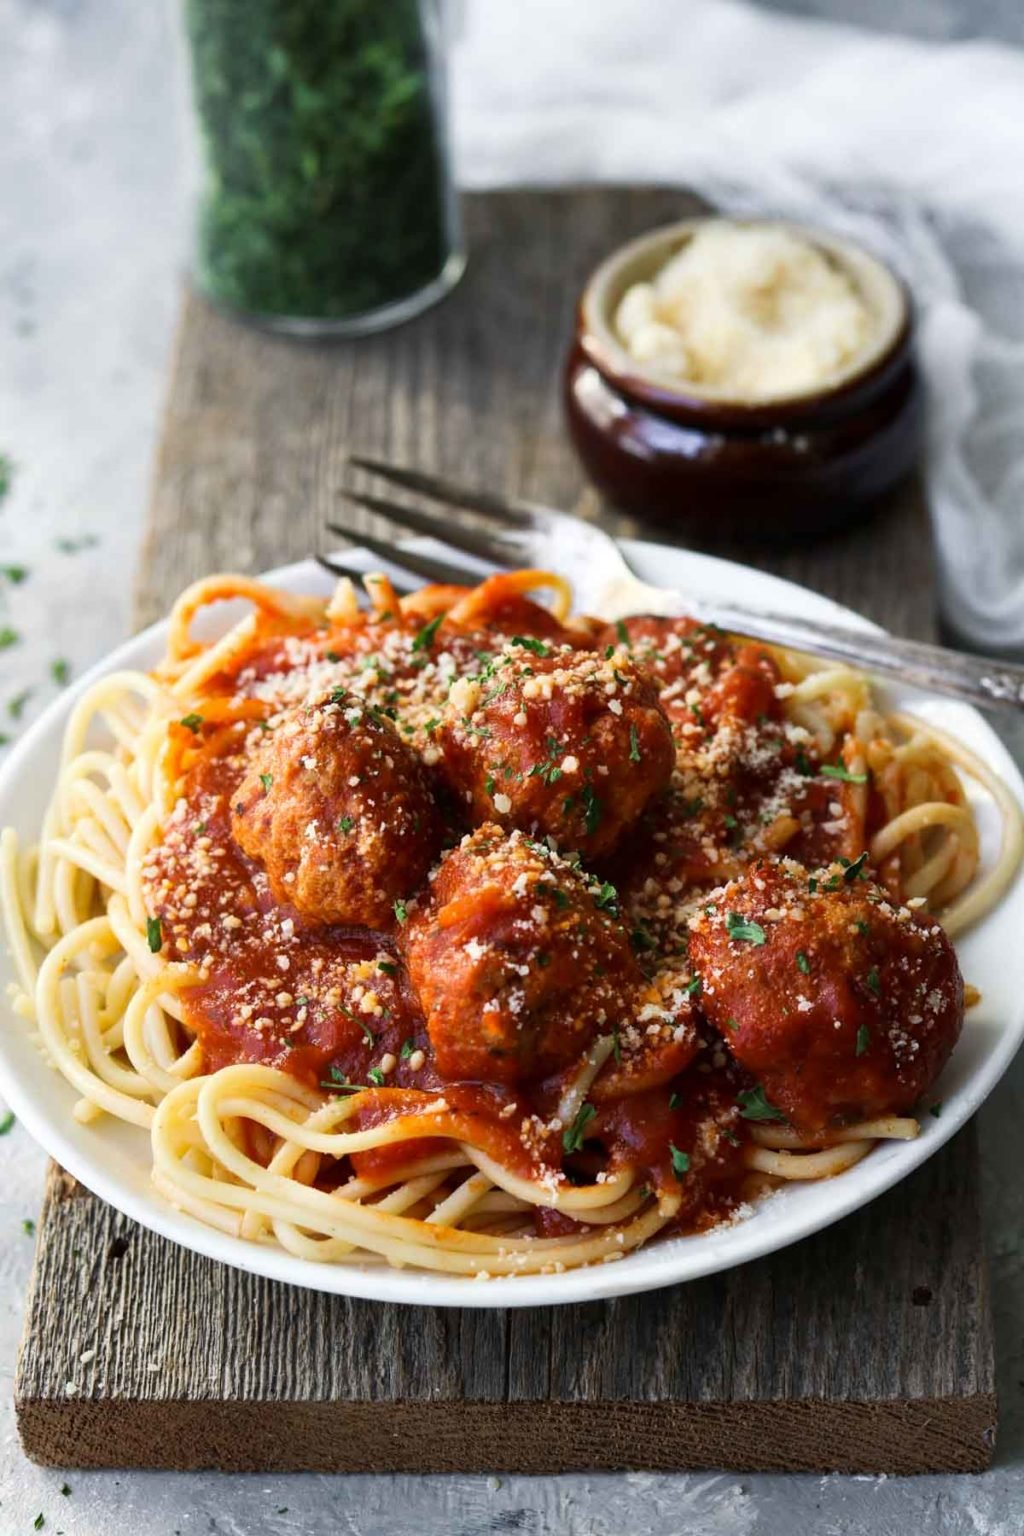 Turkey meatballs over spaghetti on a white plate on a wood board